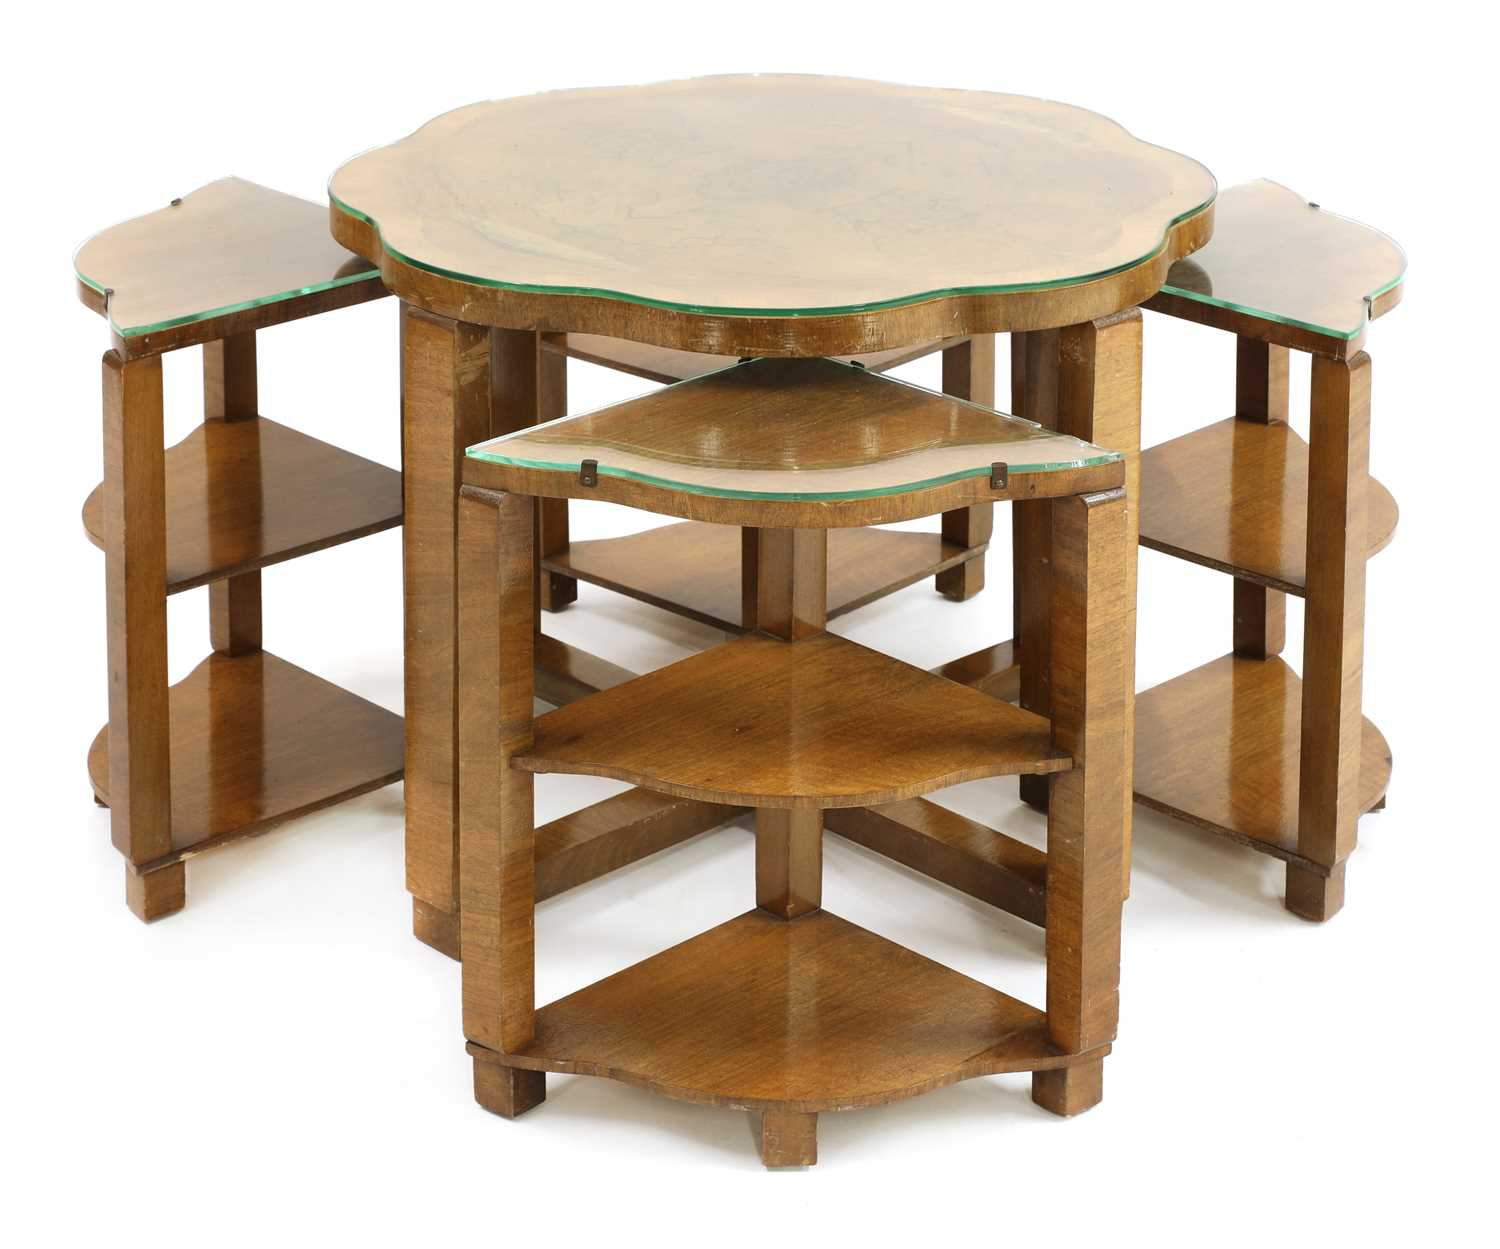 An Art Deco walnut nest of tables, - Image 2 of 3